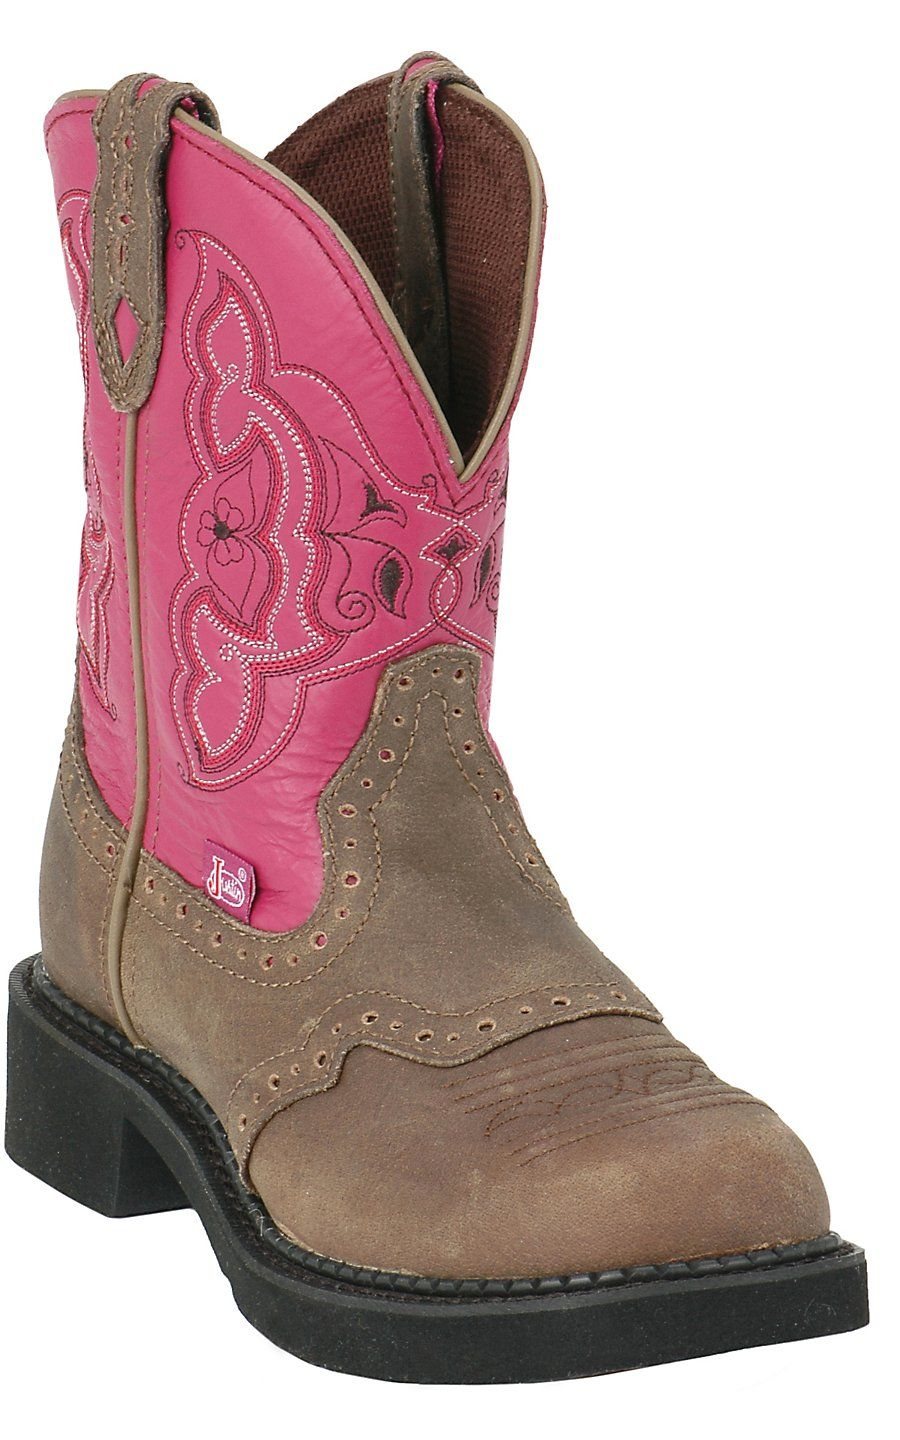 0330ba532c238 Justin® Ladies Gypsy™ Collection Boots Brown with Fuschia 8